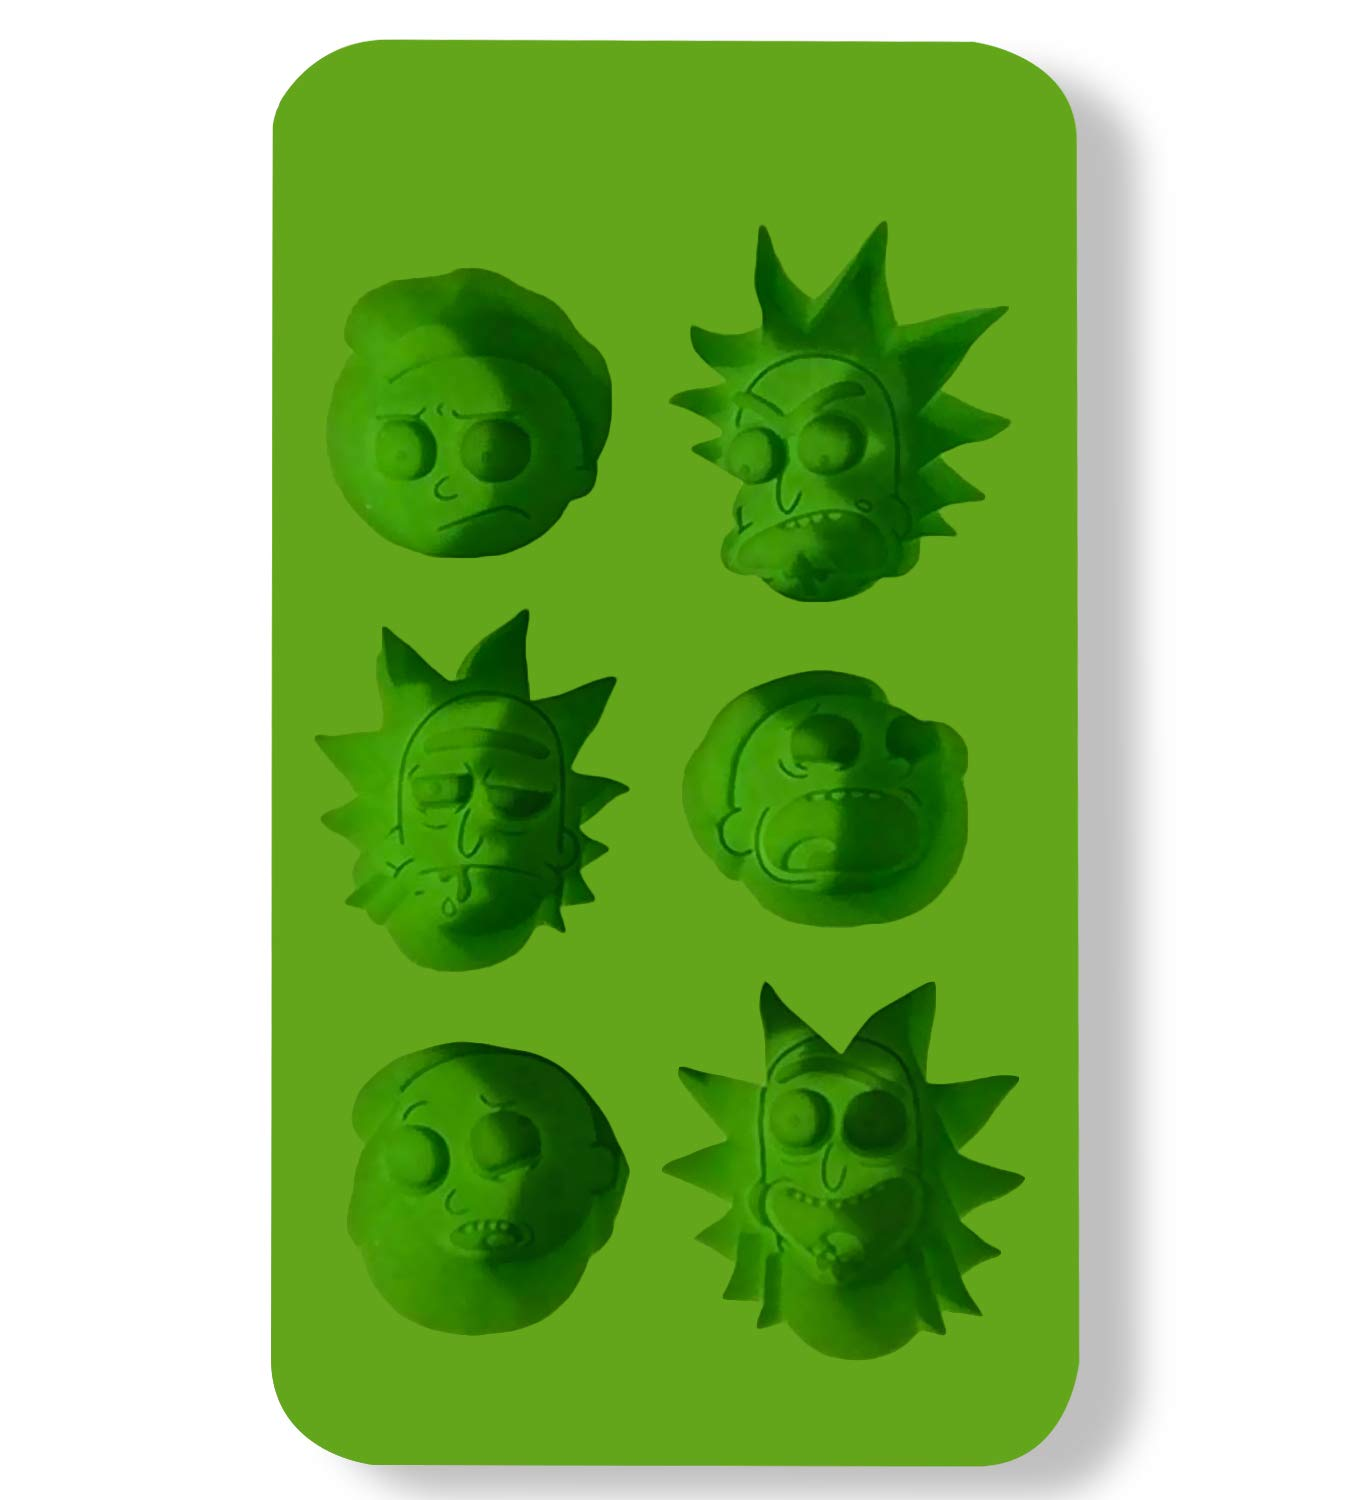 Rick and Morty Ice Cube Tray (BPA-Free) By Just Funky, By JustFunky